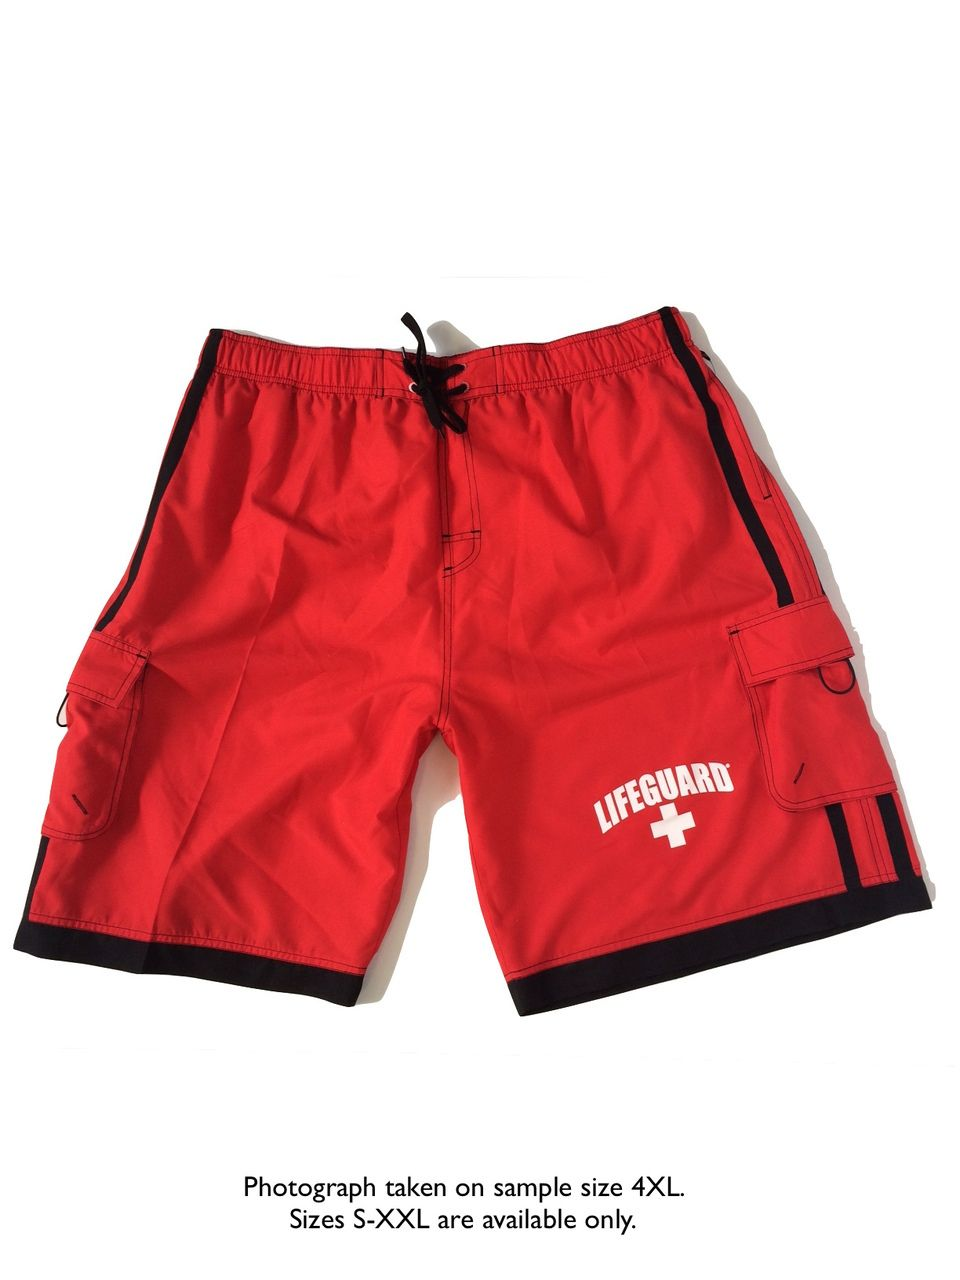 95c0ffe3ab Beach Lifeguard - Men's LIFEGUARD® Performance Active Board Short Swim Suit  , $28.99 (http